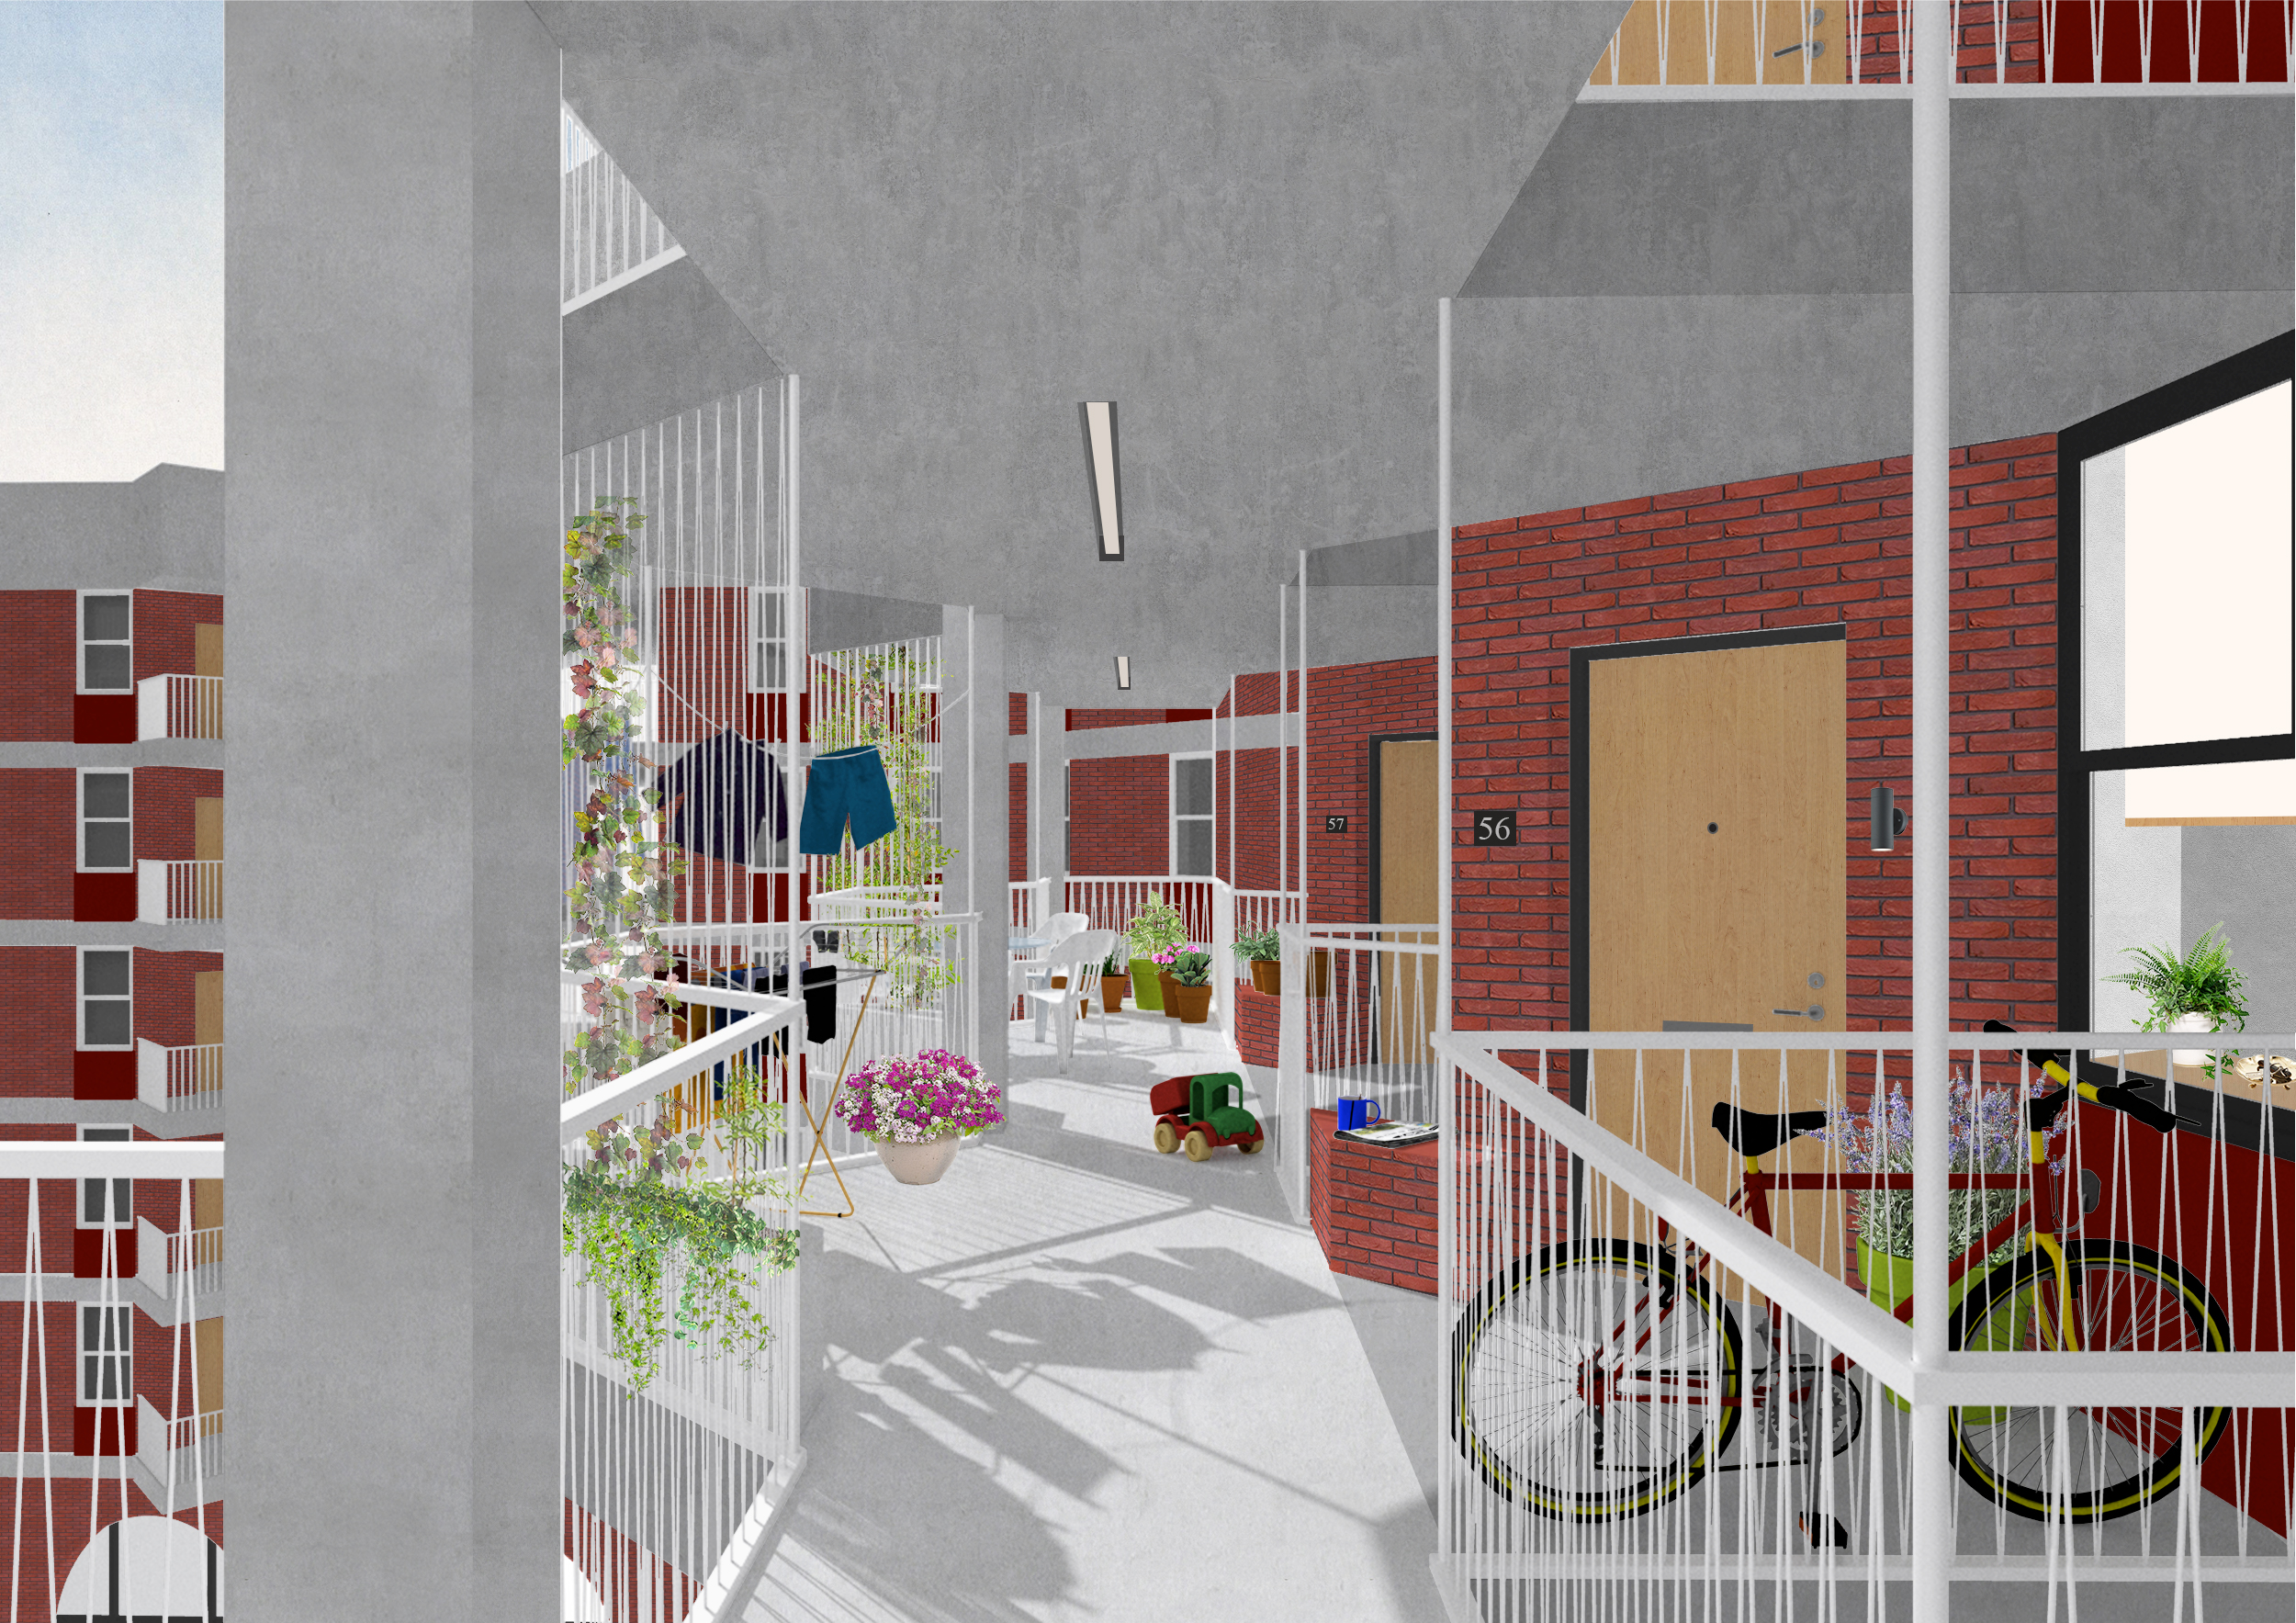 Walkways act as extensions to the home